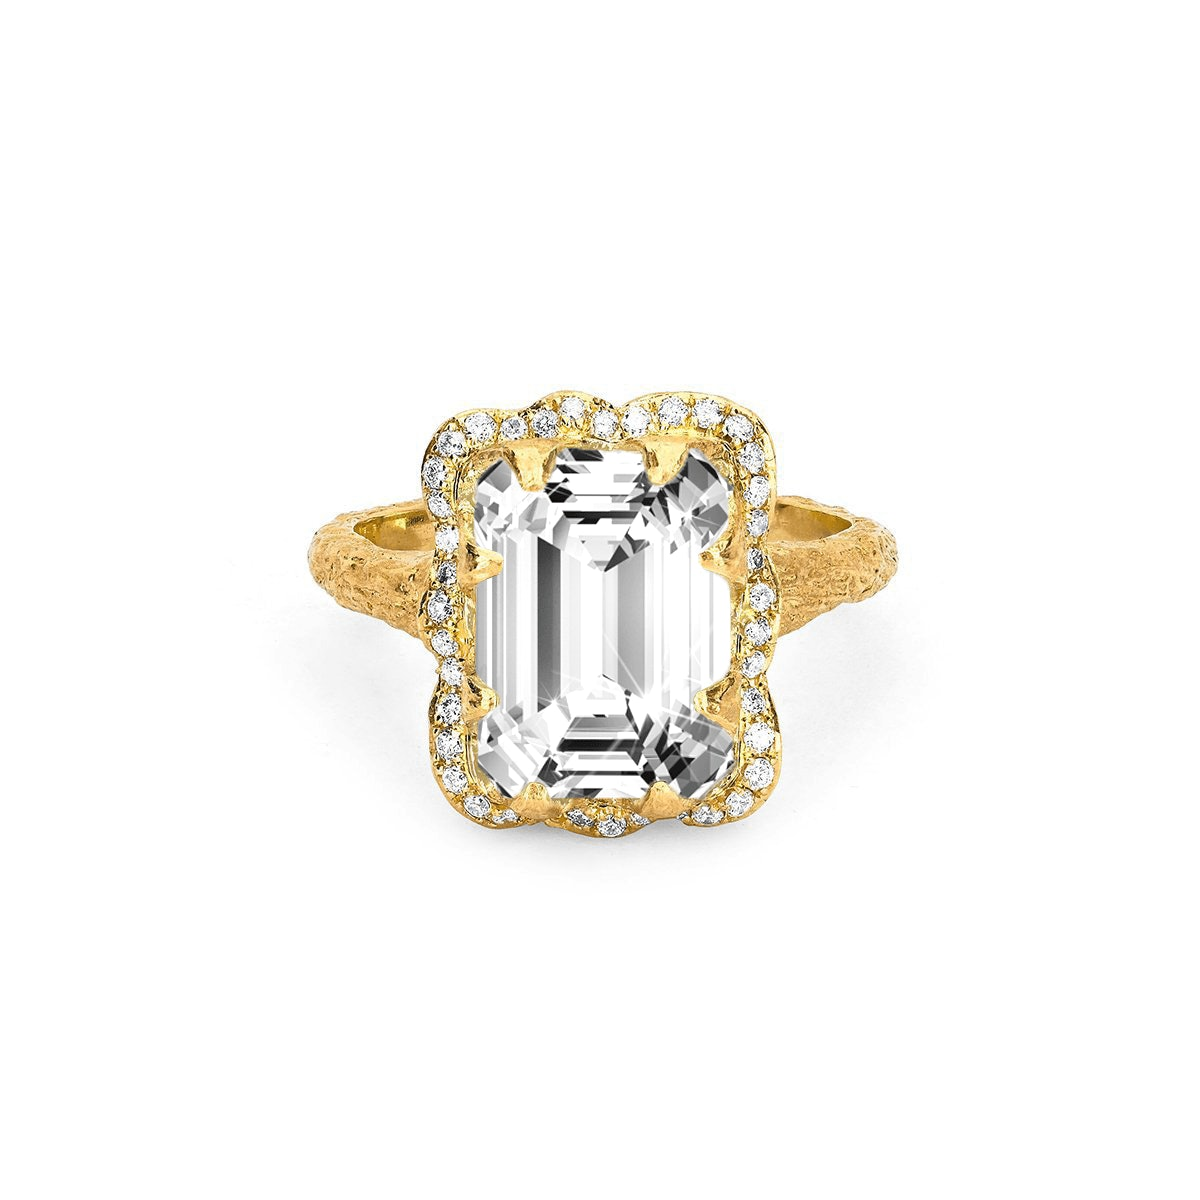 Queen Emerald Cut Diamond Setting with Full Pavé Halo from Logan Hollowell.